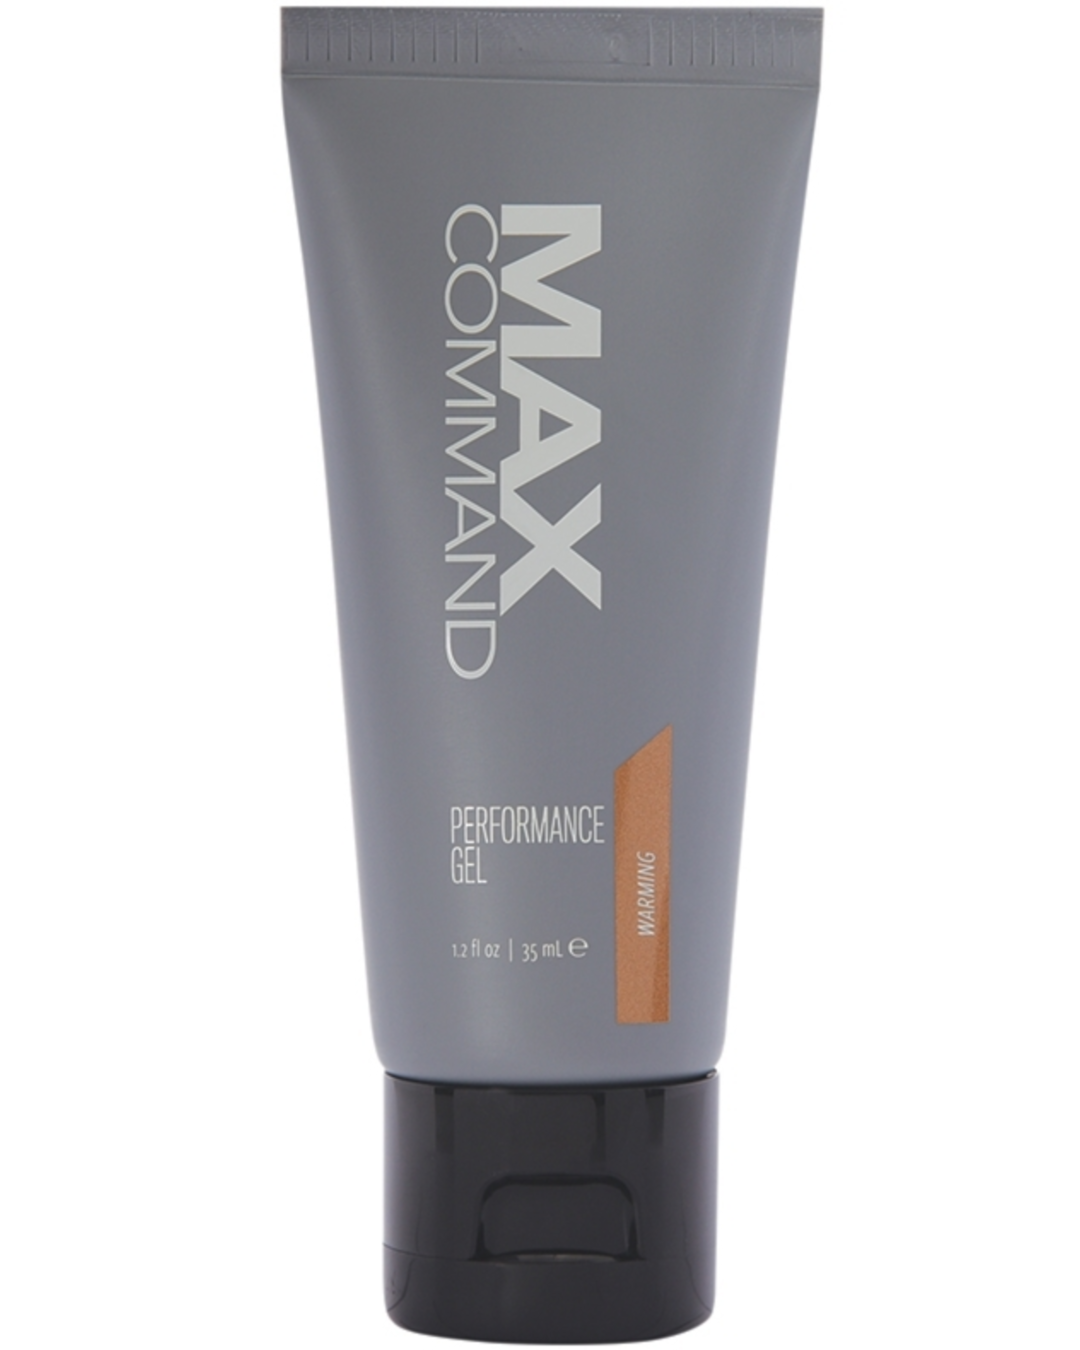 Max Command Performance Gel - Warming 1.2 oz up closes of bottle